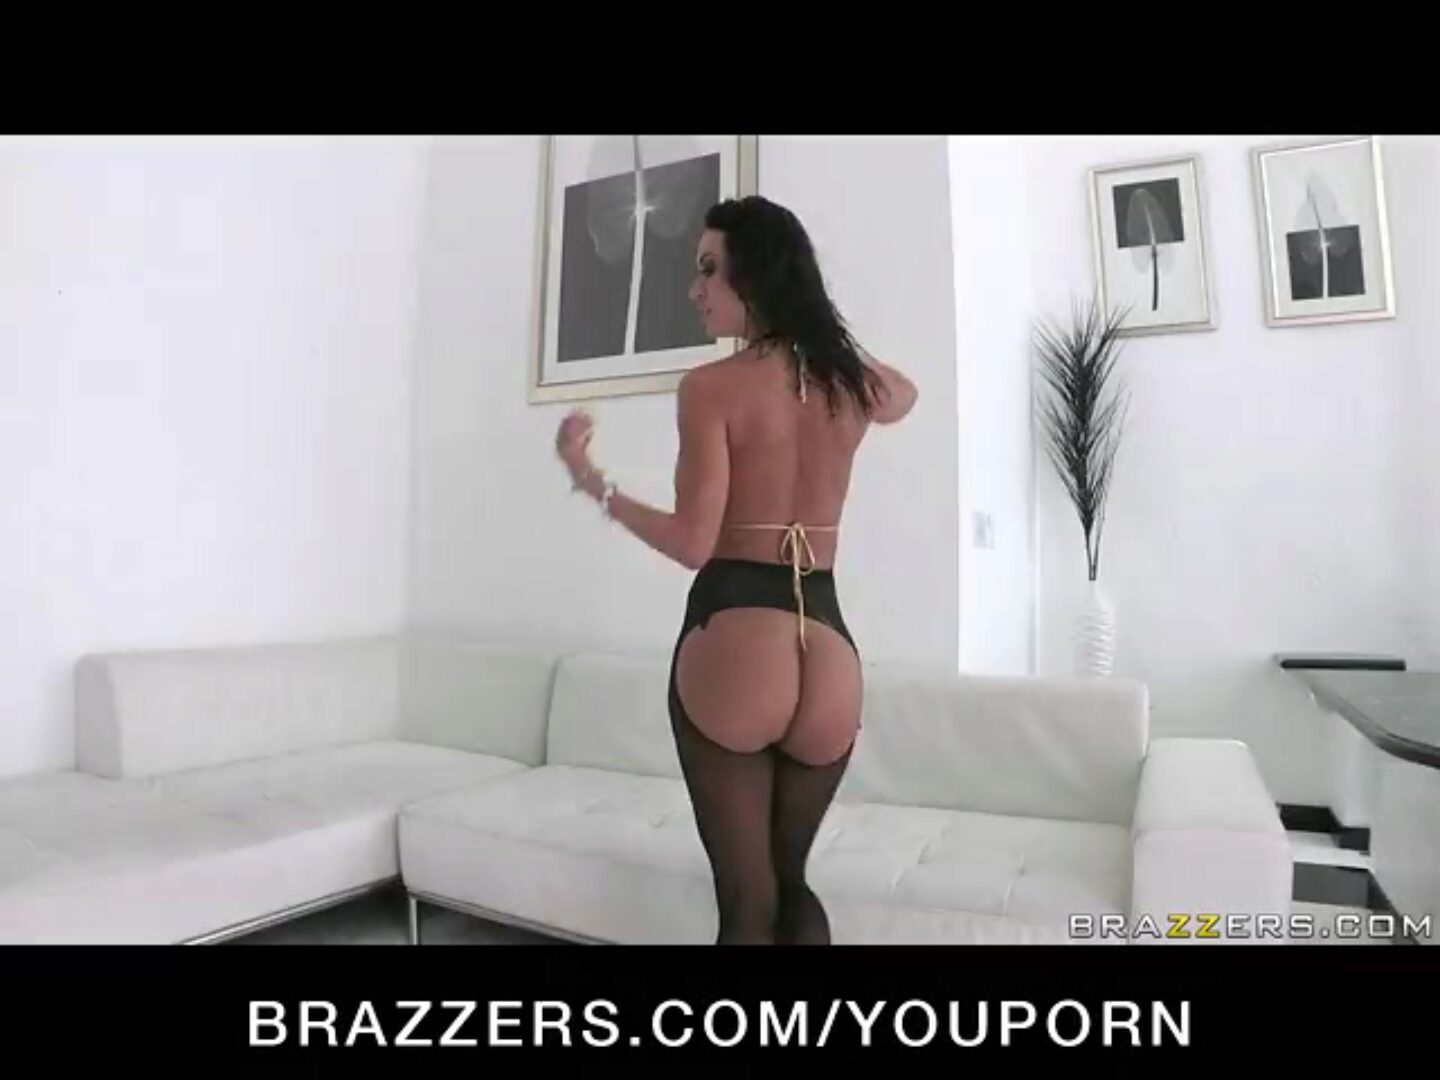 HUGE OIL ASS EURO BIG TIT BABE TAKES HARD ANAL ASS HUGE OIL ASS EURO BIG TIT BABE TAKES HARD ANAL ASS FUCK BY BIG DICK